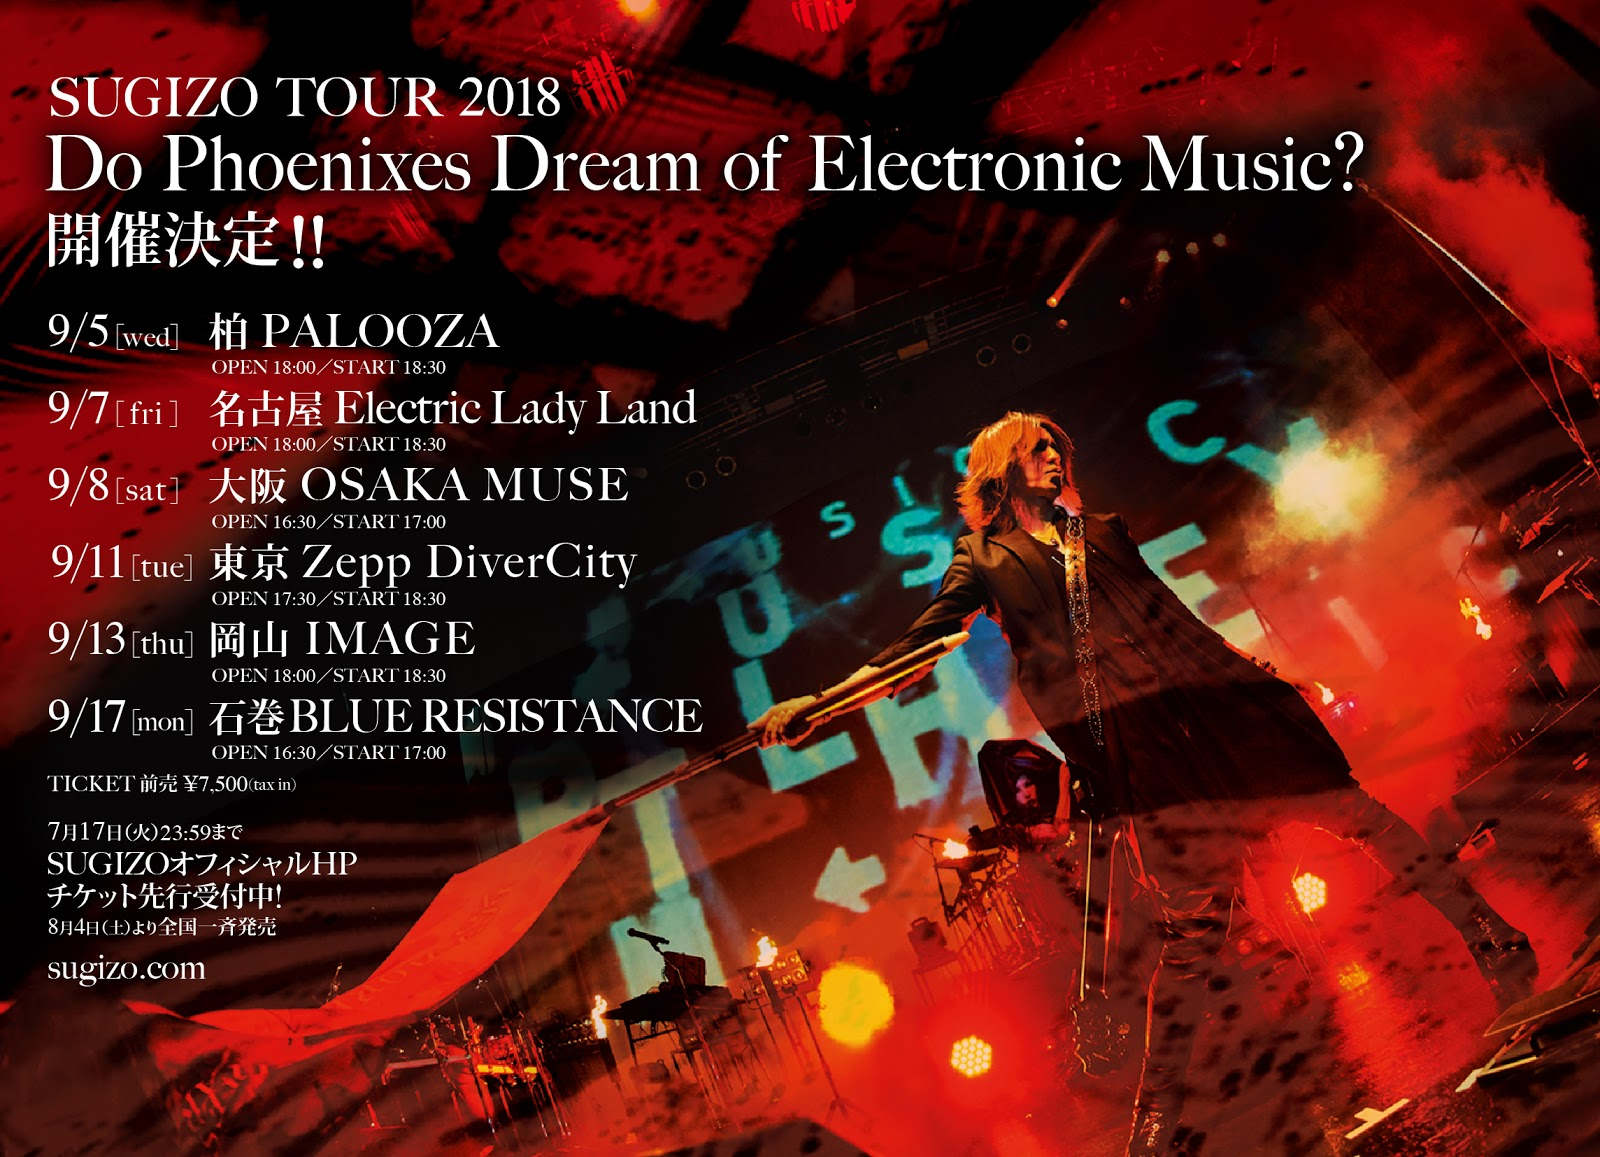 SUGIZO TOUR 2018 [Do Phoenixes Dream of Electronic Music?]